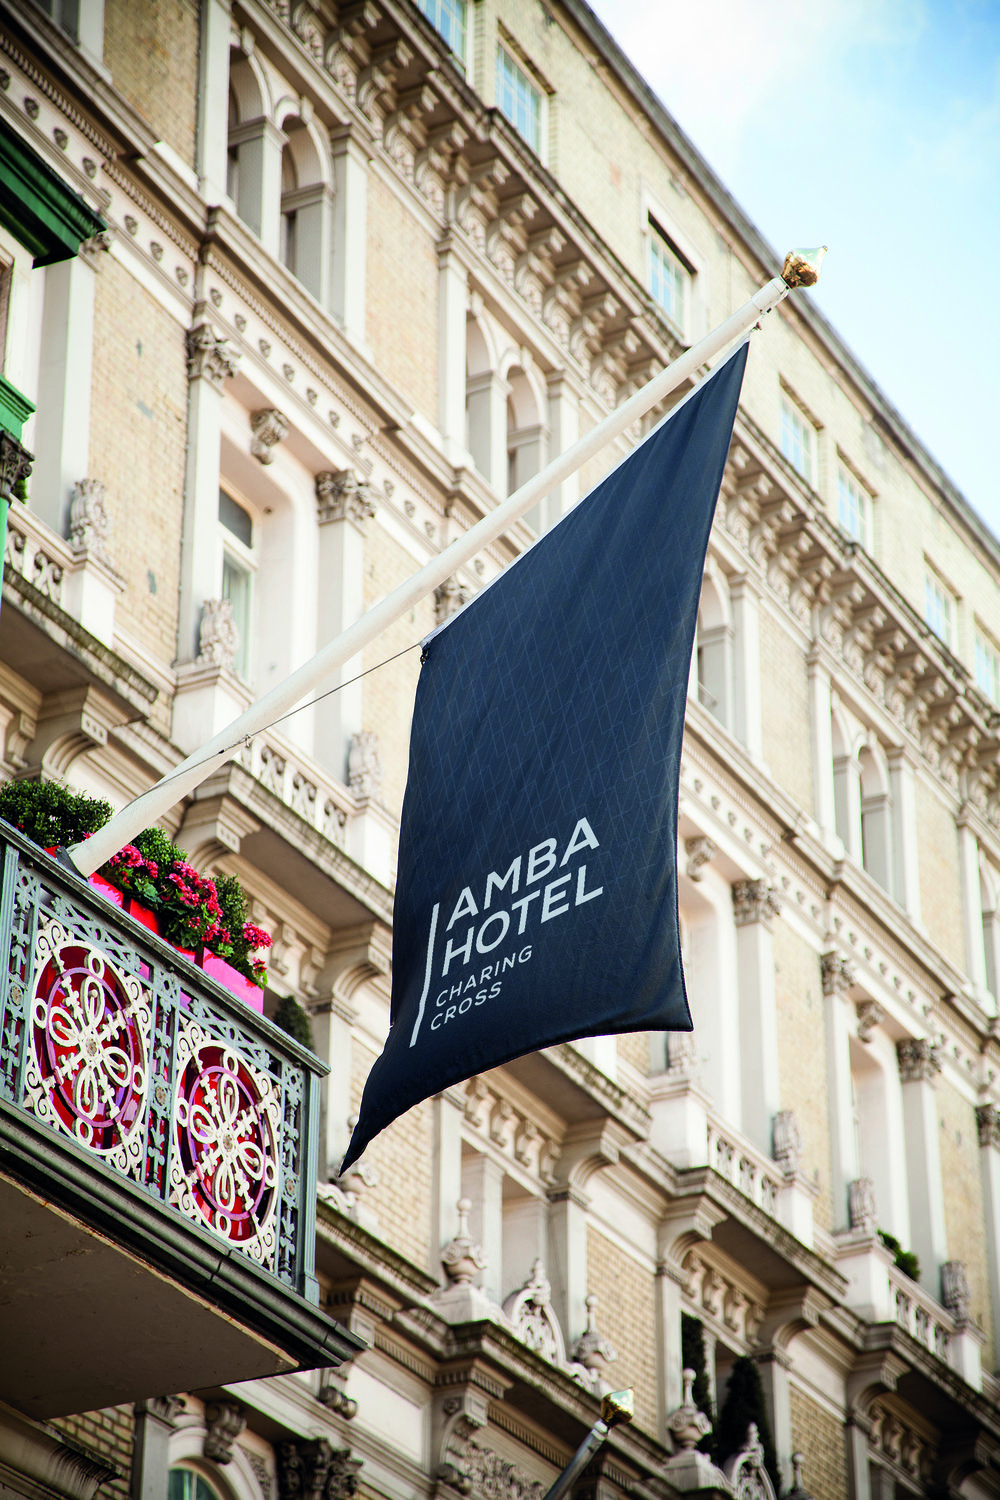 Legendary places to stay – Amba Hotels Charing Cross  Best for: a royal march along the Strand  Amba Hotels Charing Cross overlooks the historic Strand in central London. It's within view of the National Gallery and a short walk to Big Ben and the Houses of Parliament. It's equipped with all the modern essentials you'd need for a royal stay, while still maintaining a classic British feel.